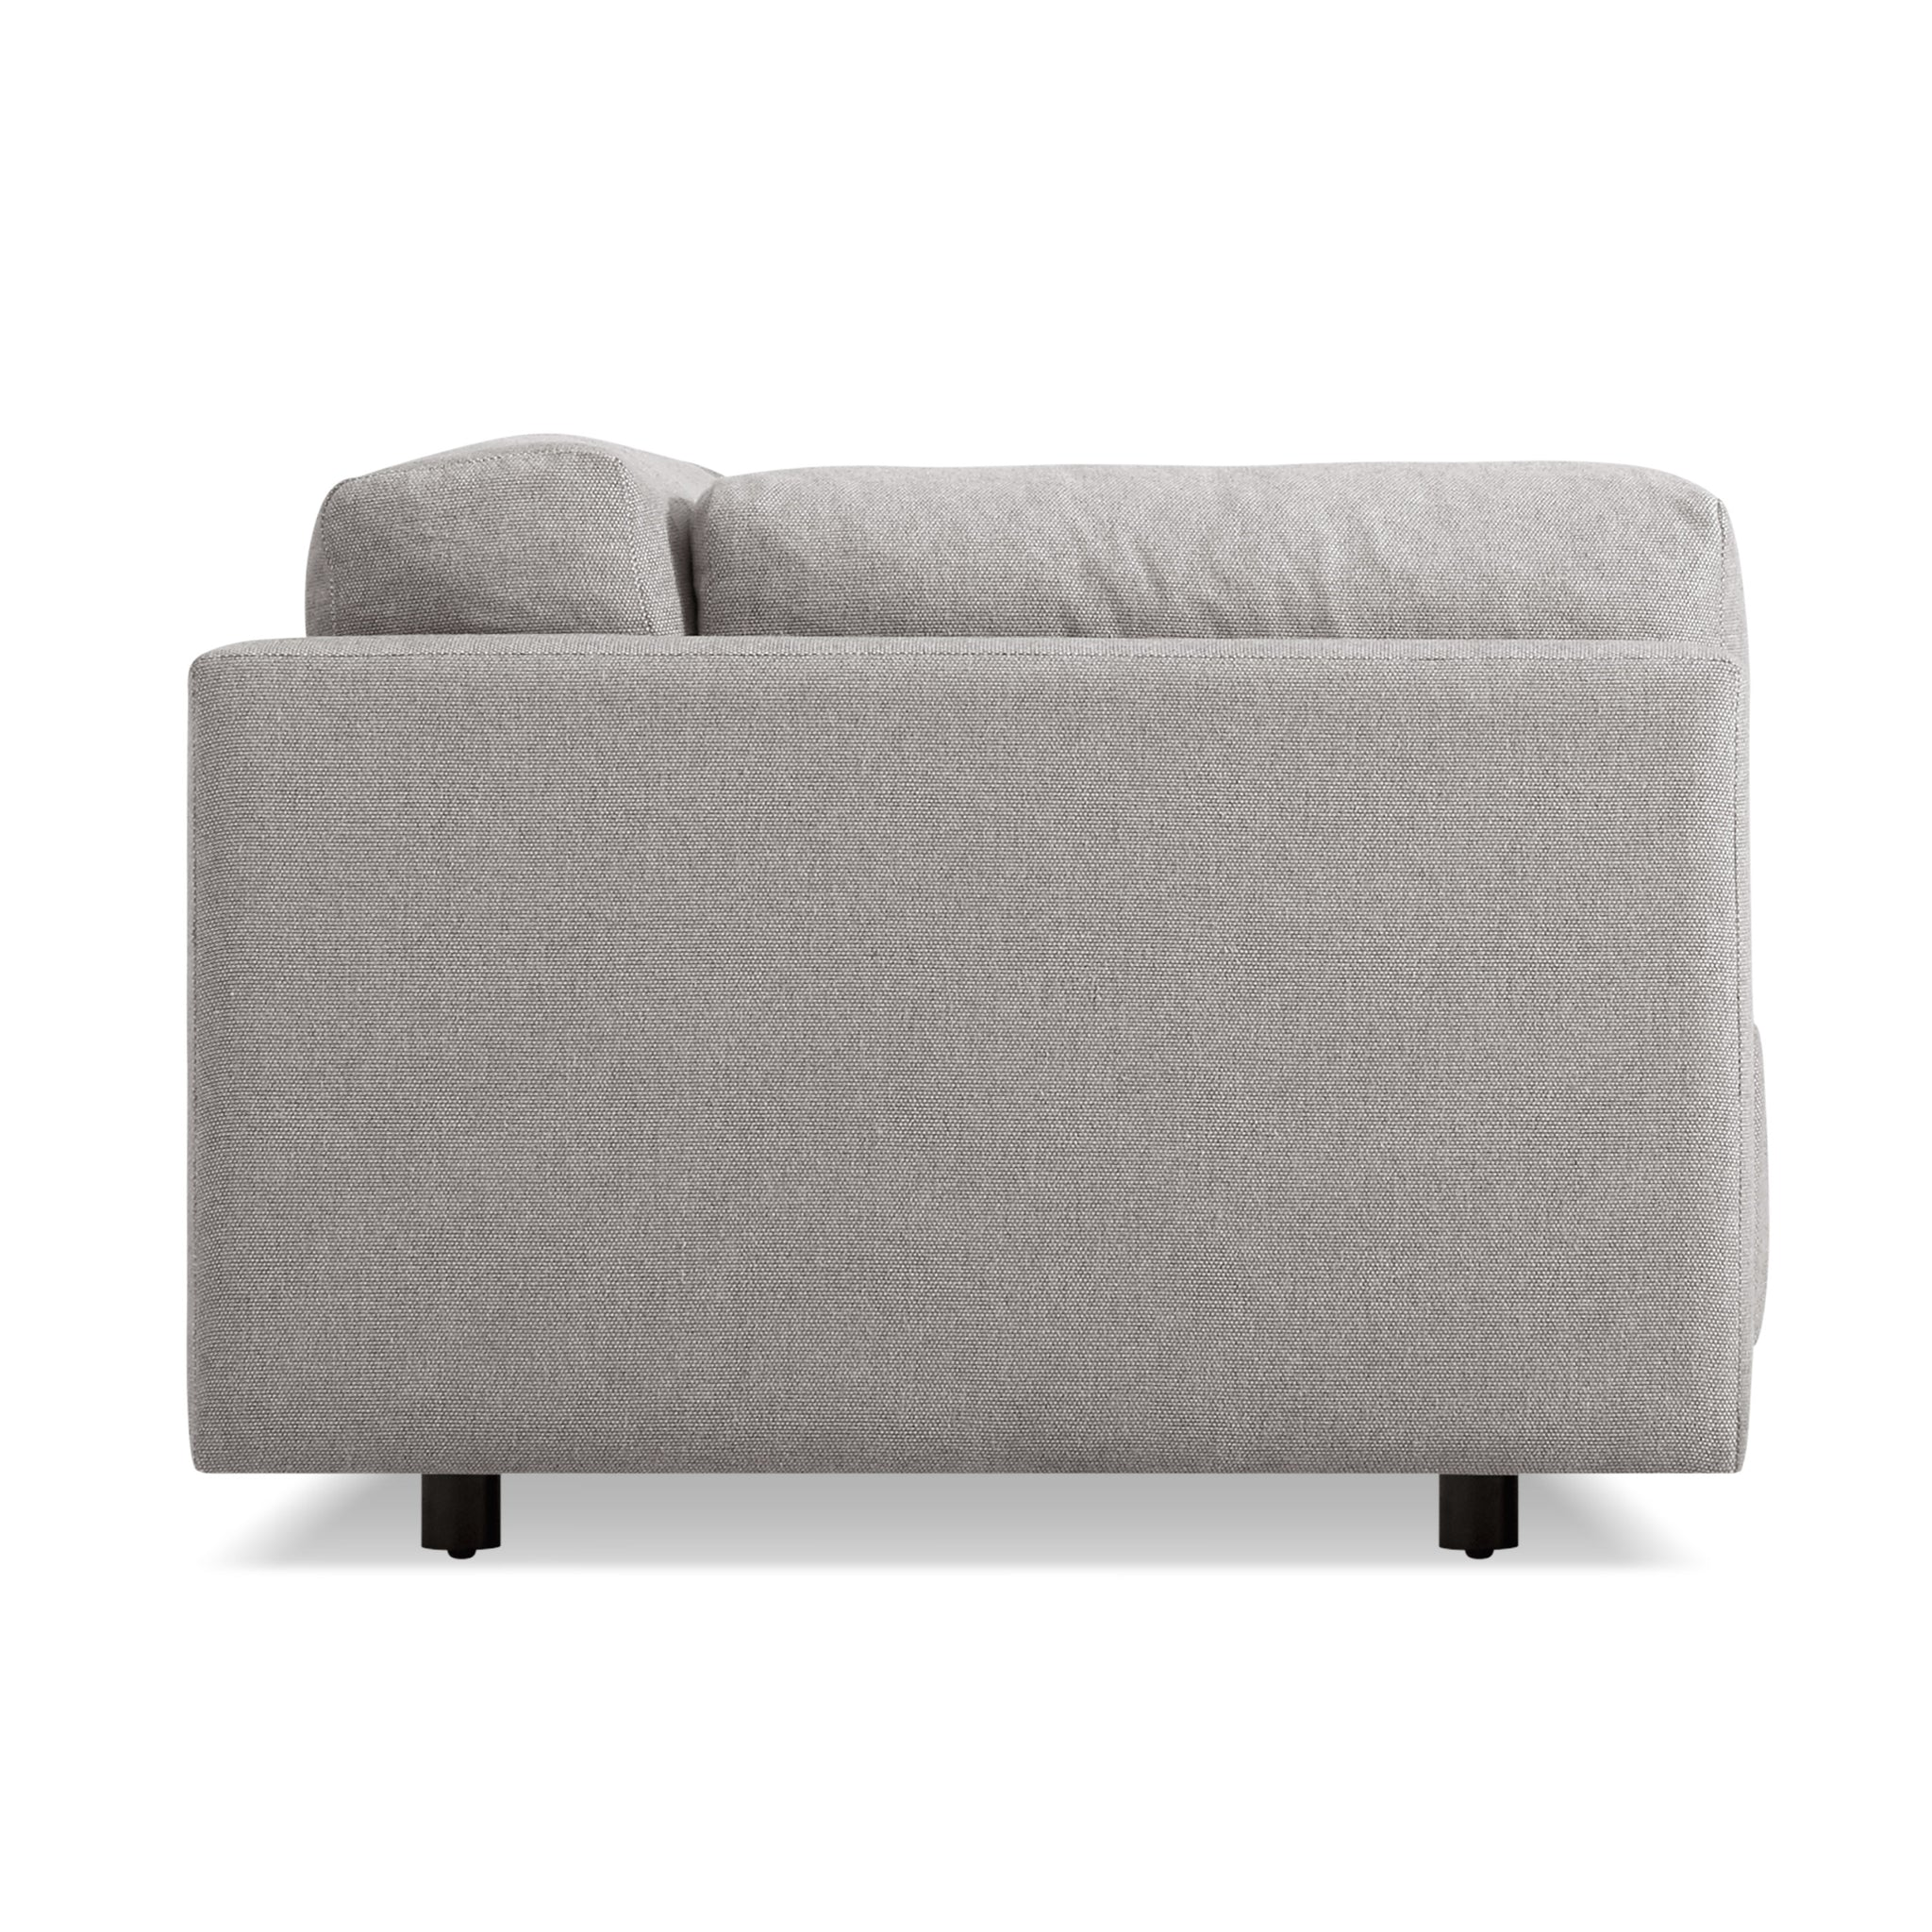 "Sunday 102"" Sofa"